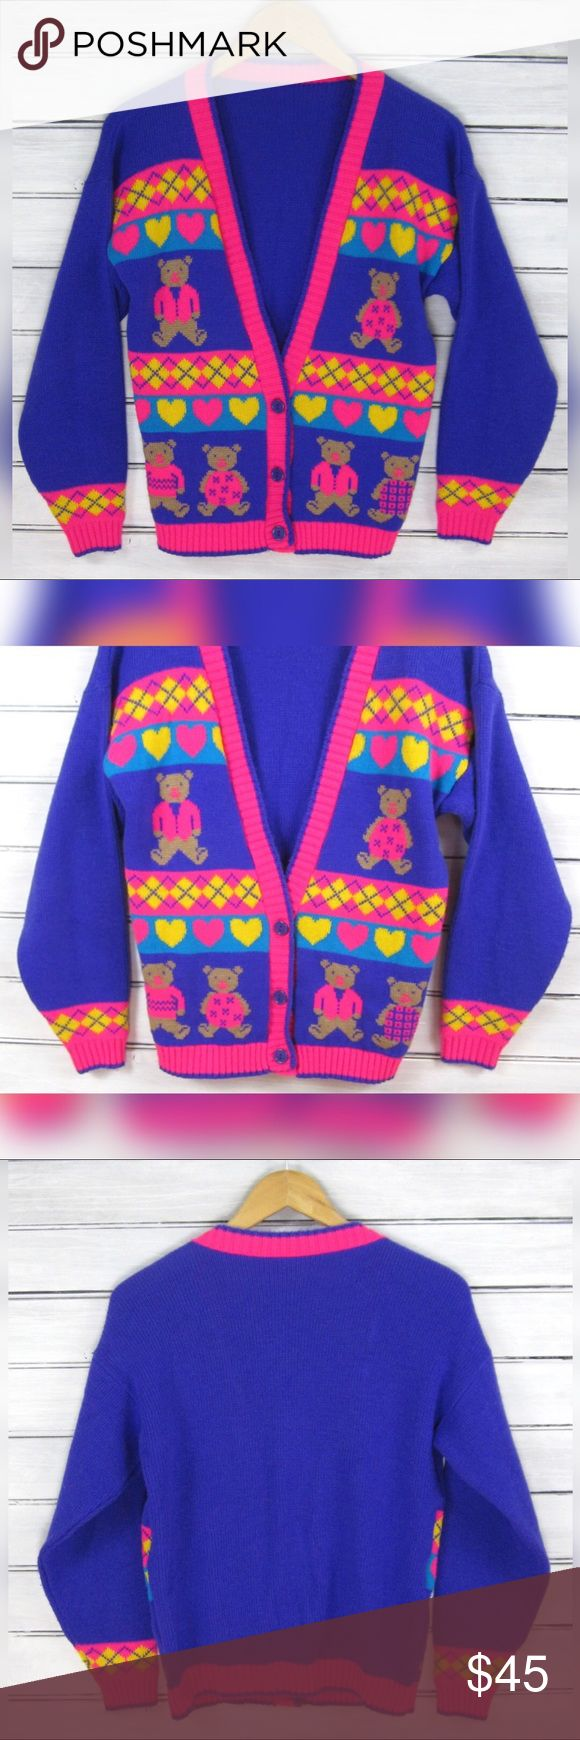 90s Neon TEDDY BEAR Knit Club Kid Cardigan Sweater Vintage 90s neon purple intarsia knit teddy bear cardigan sweater! Features long sleeves, a front button closure and a v-neckline. Bright flourescent violet purple in color (looks slightly more blue in my pictures for some reason) featuring hot pink, turquoise and yellow accents. Design shows adorable Intarsia knit teddy bears, hearts and tartan plaid! Unbranded, feels like a synthetic knit, ONE OF A KIND!  No size is tagged but this would…